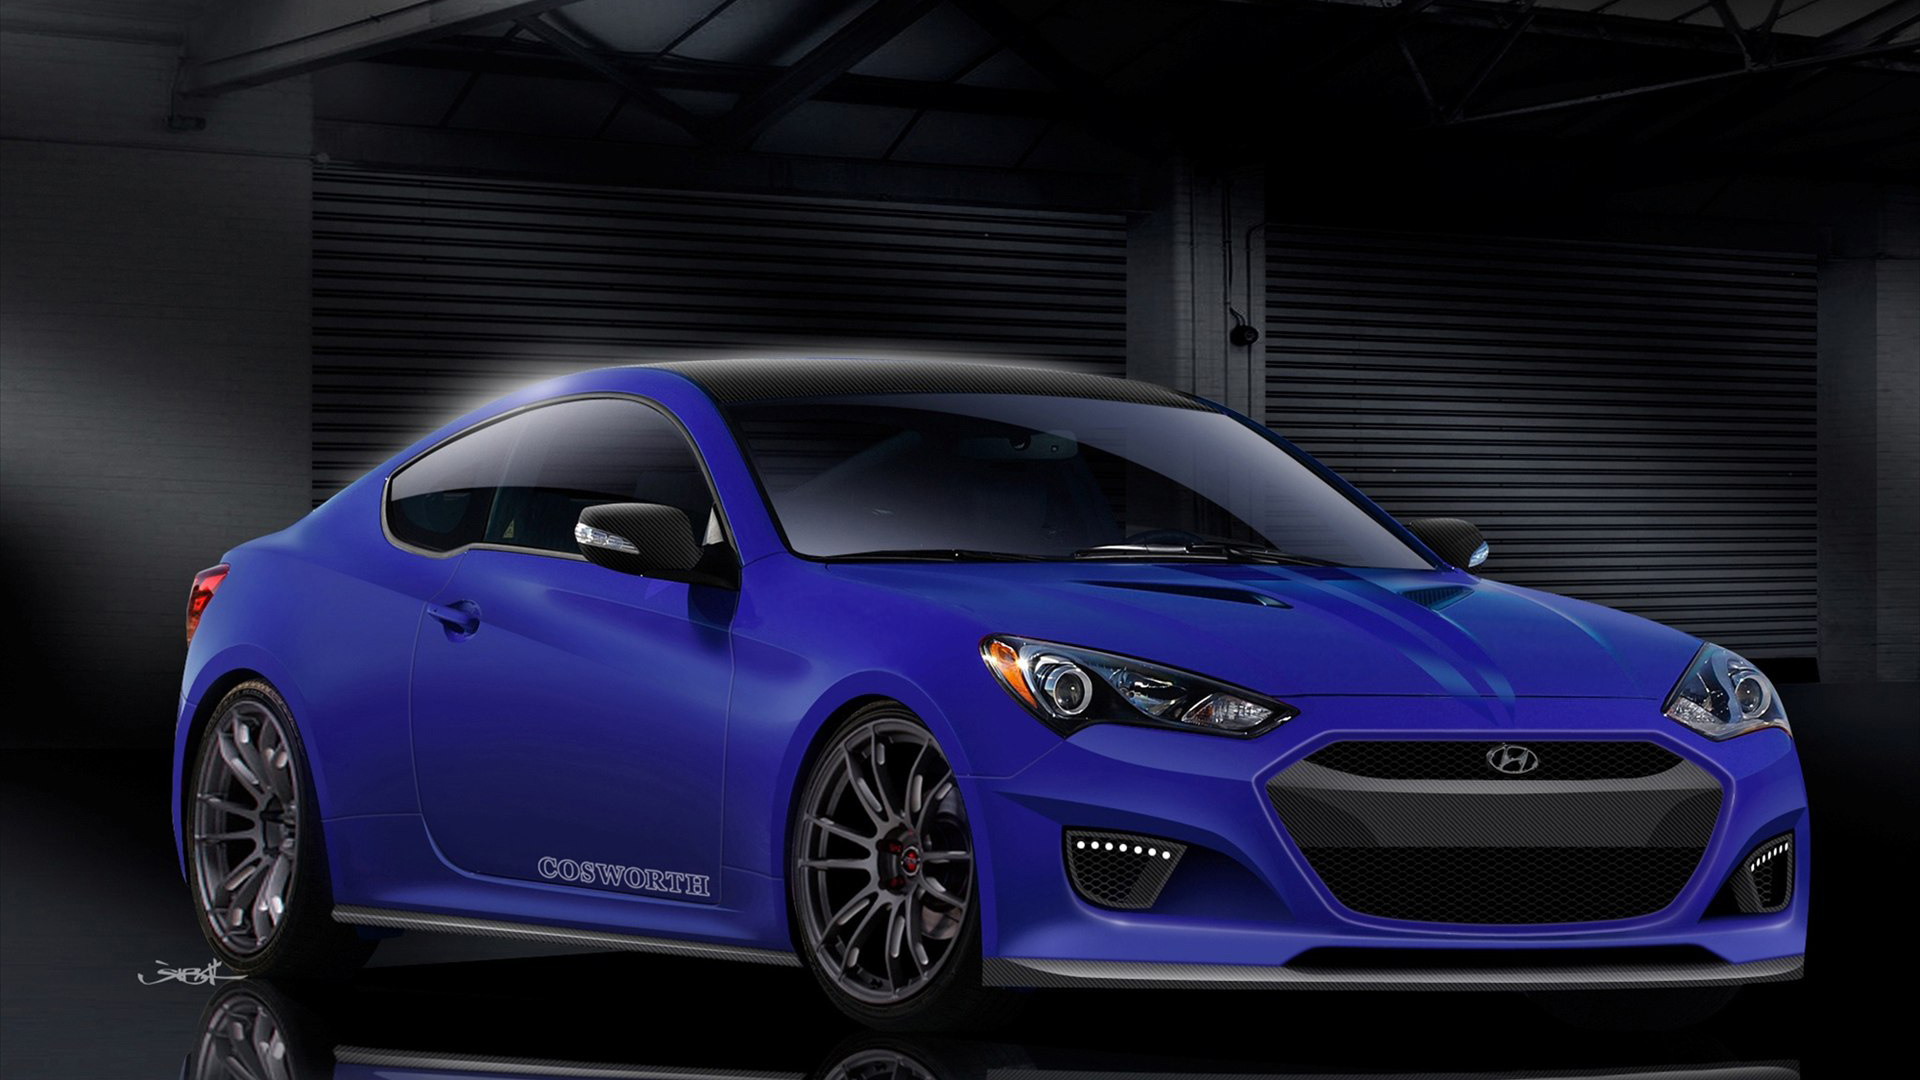 2012 cosworth hyundai genesis coupe wallpaper hd car wallpapers id 3132. Black Bedroom Furniture Sets. Home Design Ideas